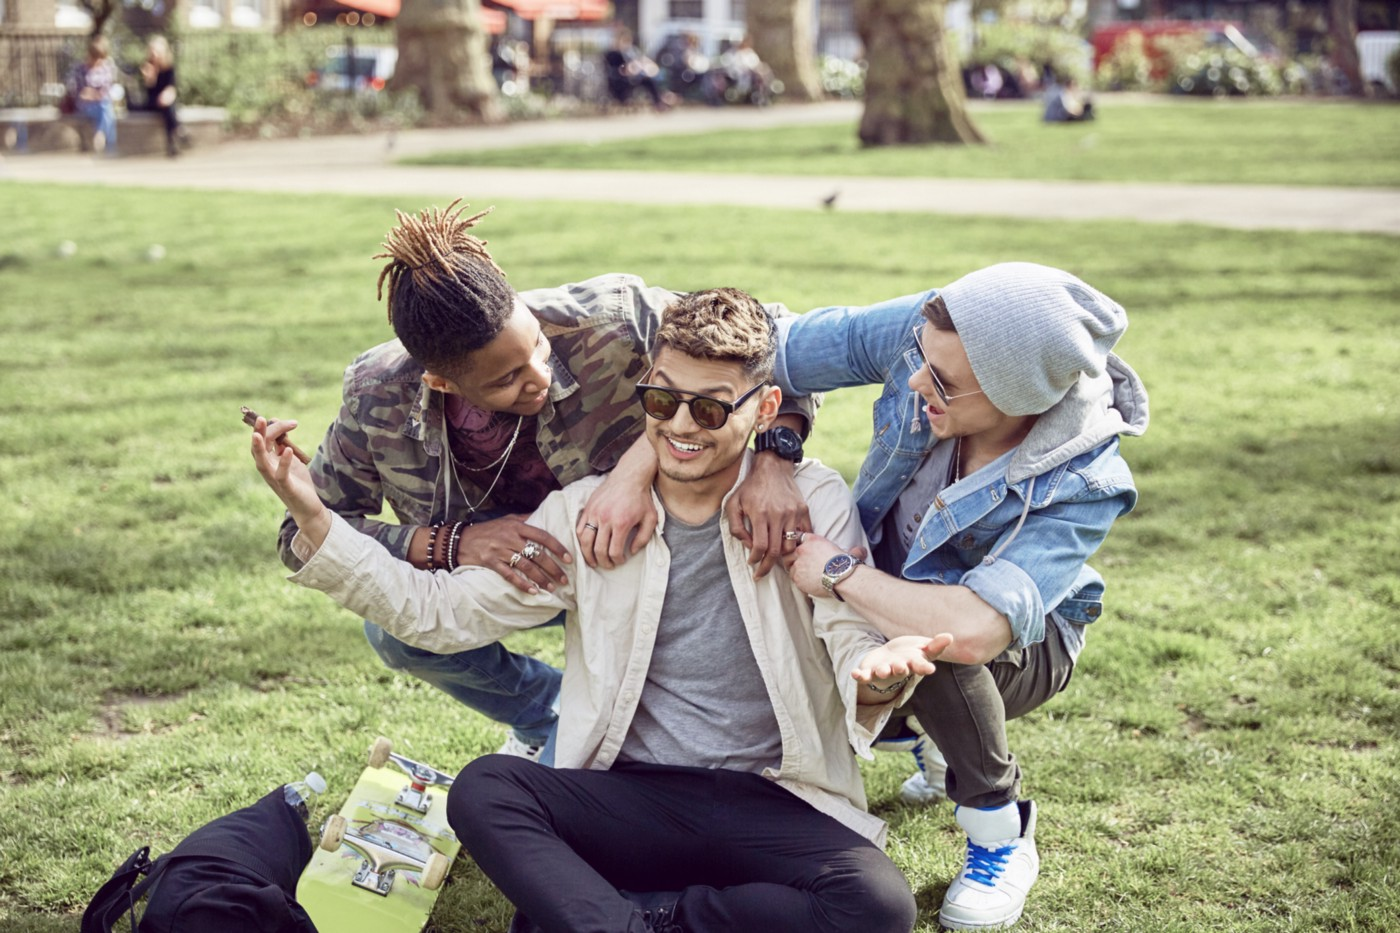 A teenage boy shrugs as his friends laugh in a circle around him at the park.